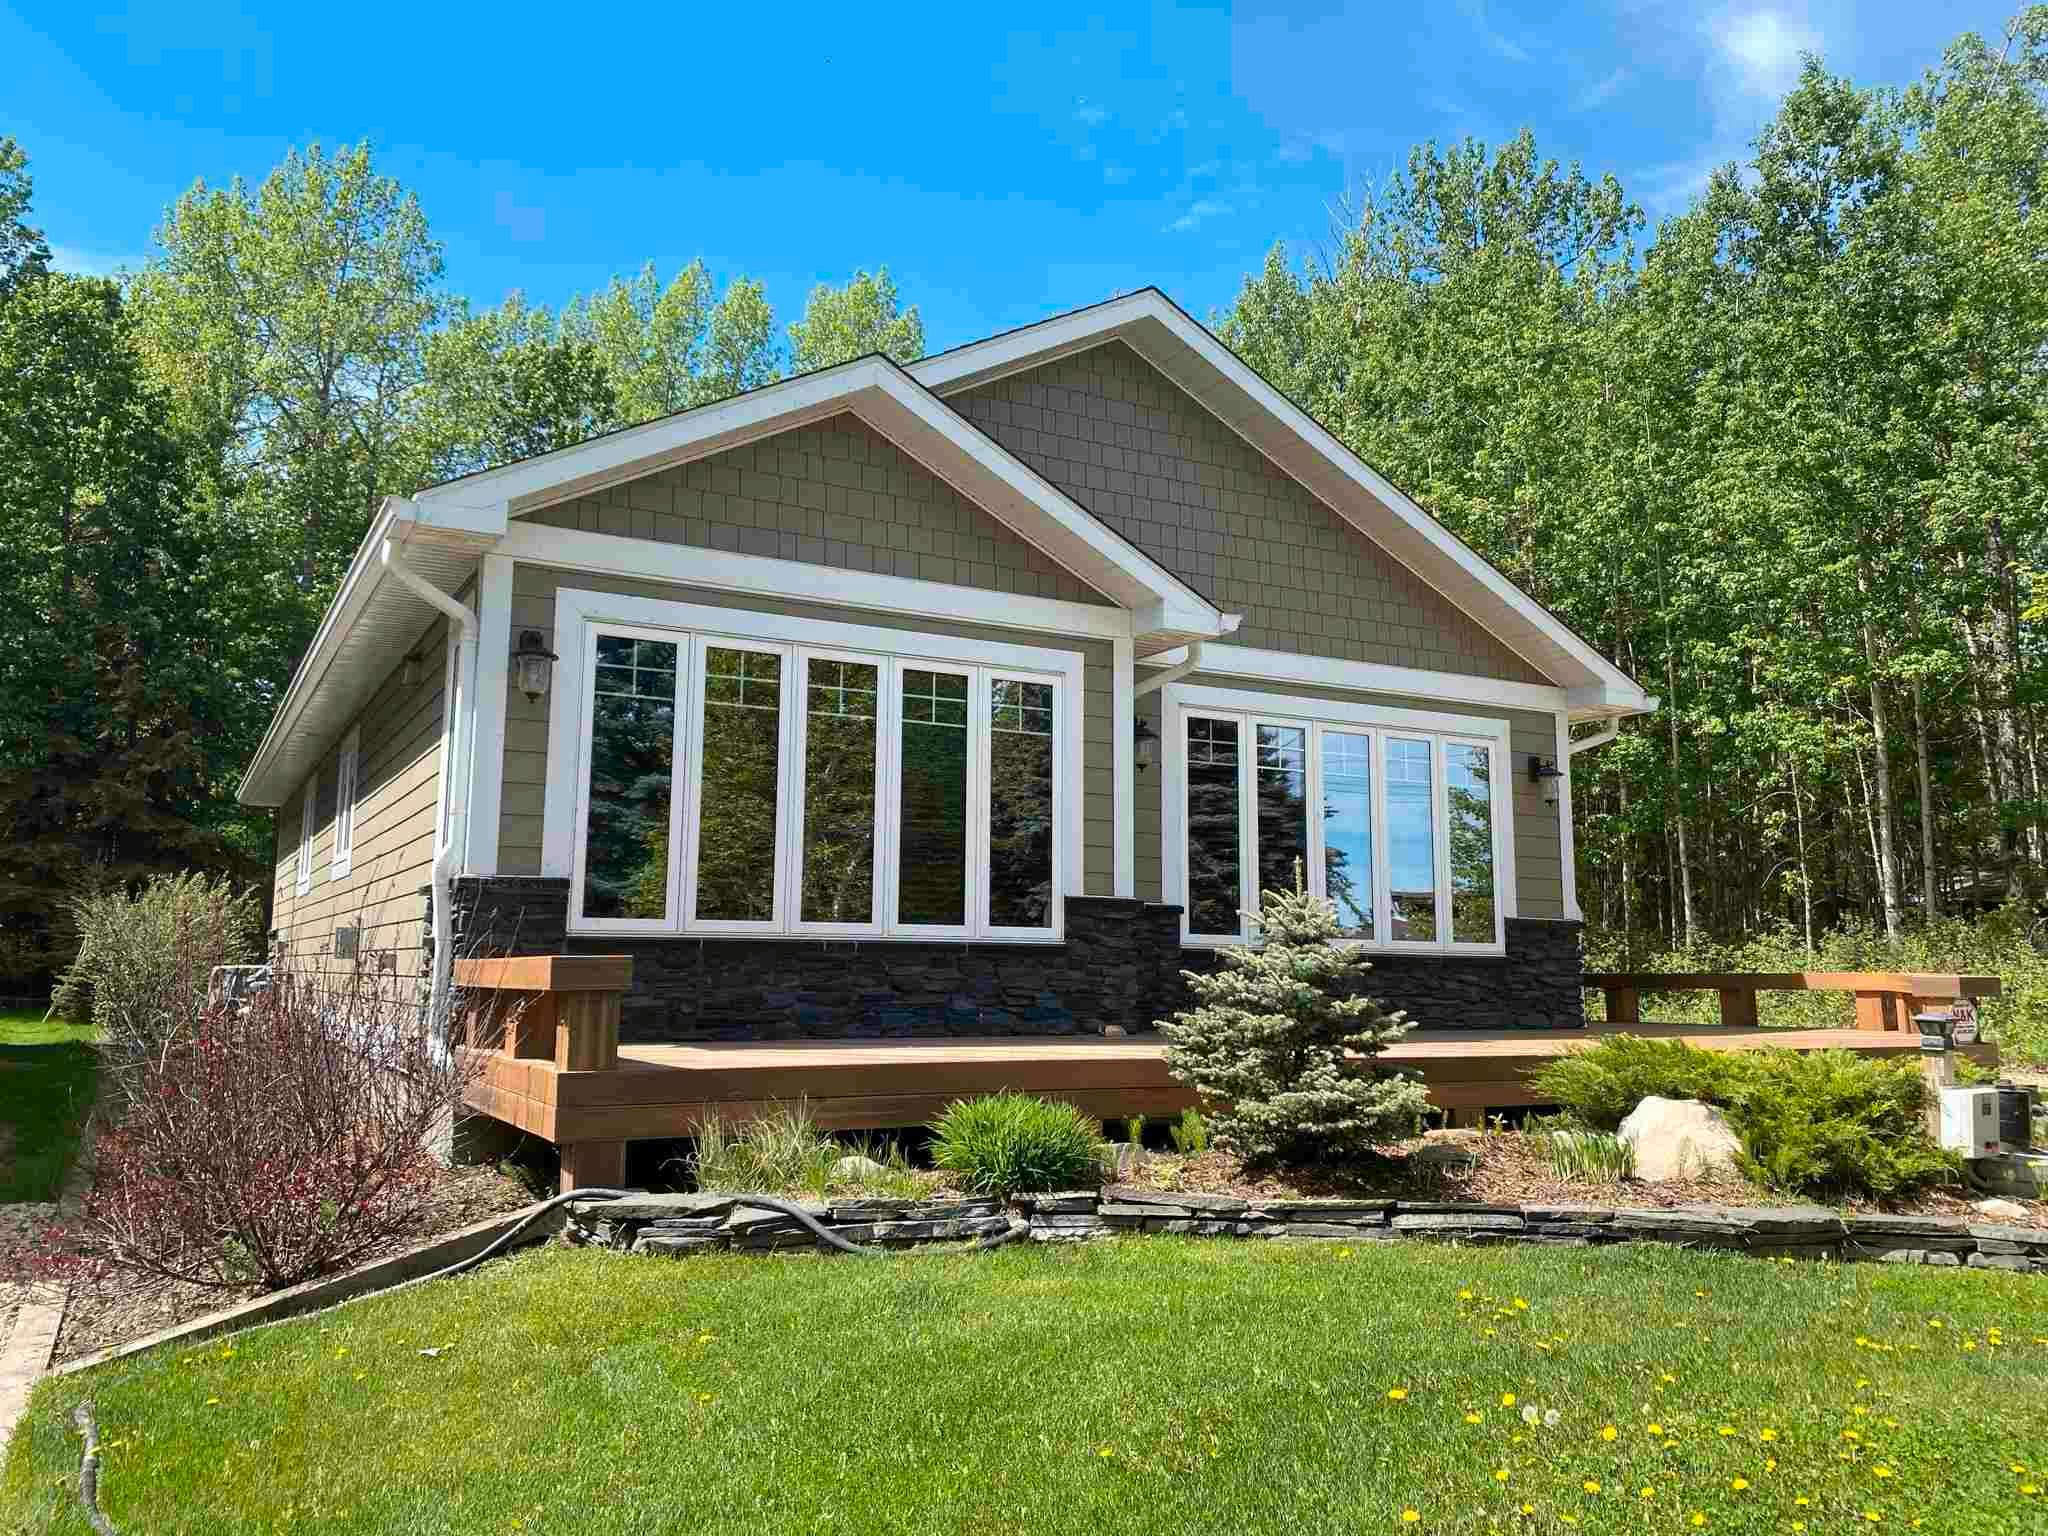 Main Photo: 143 CRYSTAL SPRINGS Drive: Rural Wetaskiwin County House for sale : MLS®# E4247412